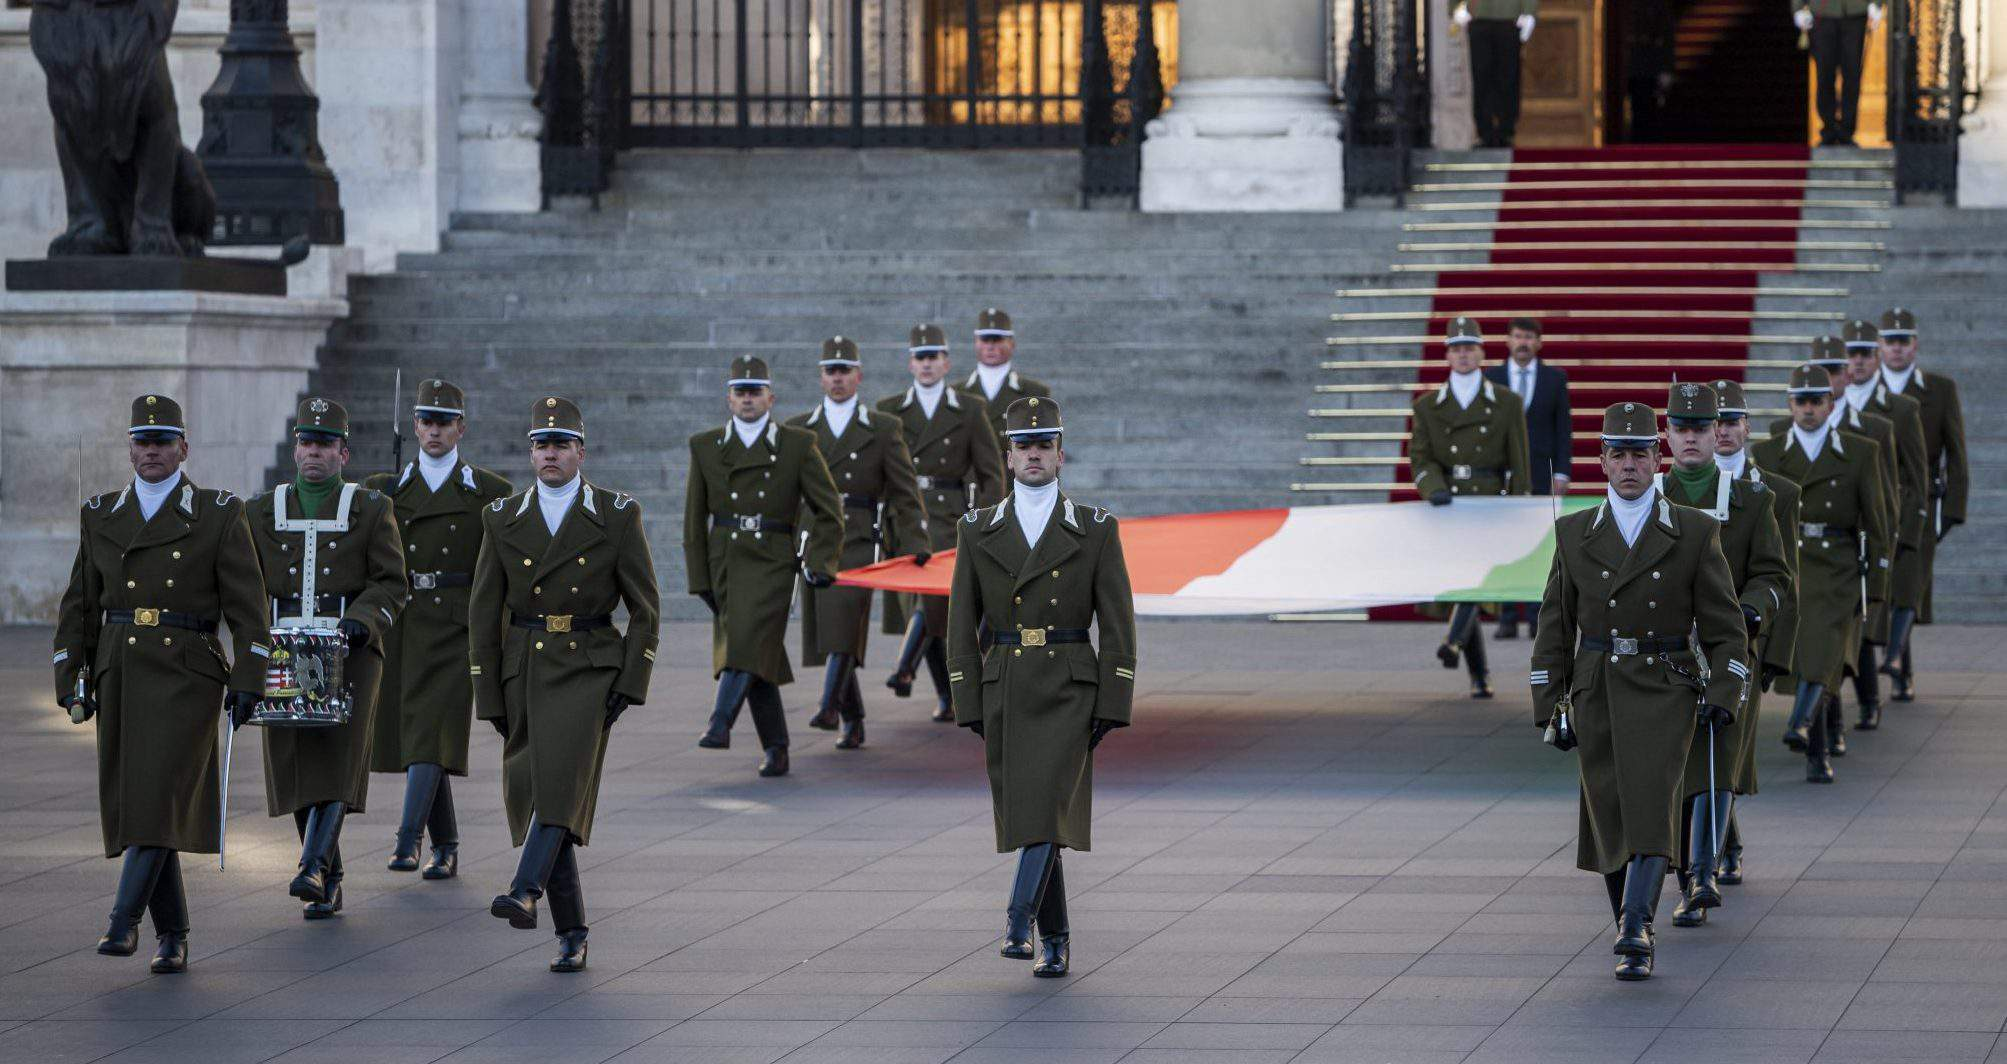 Hungarian flag commemoration